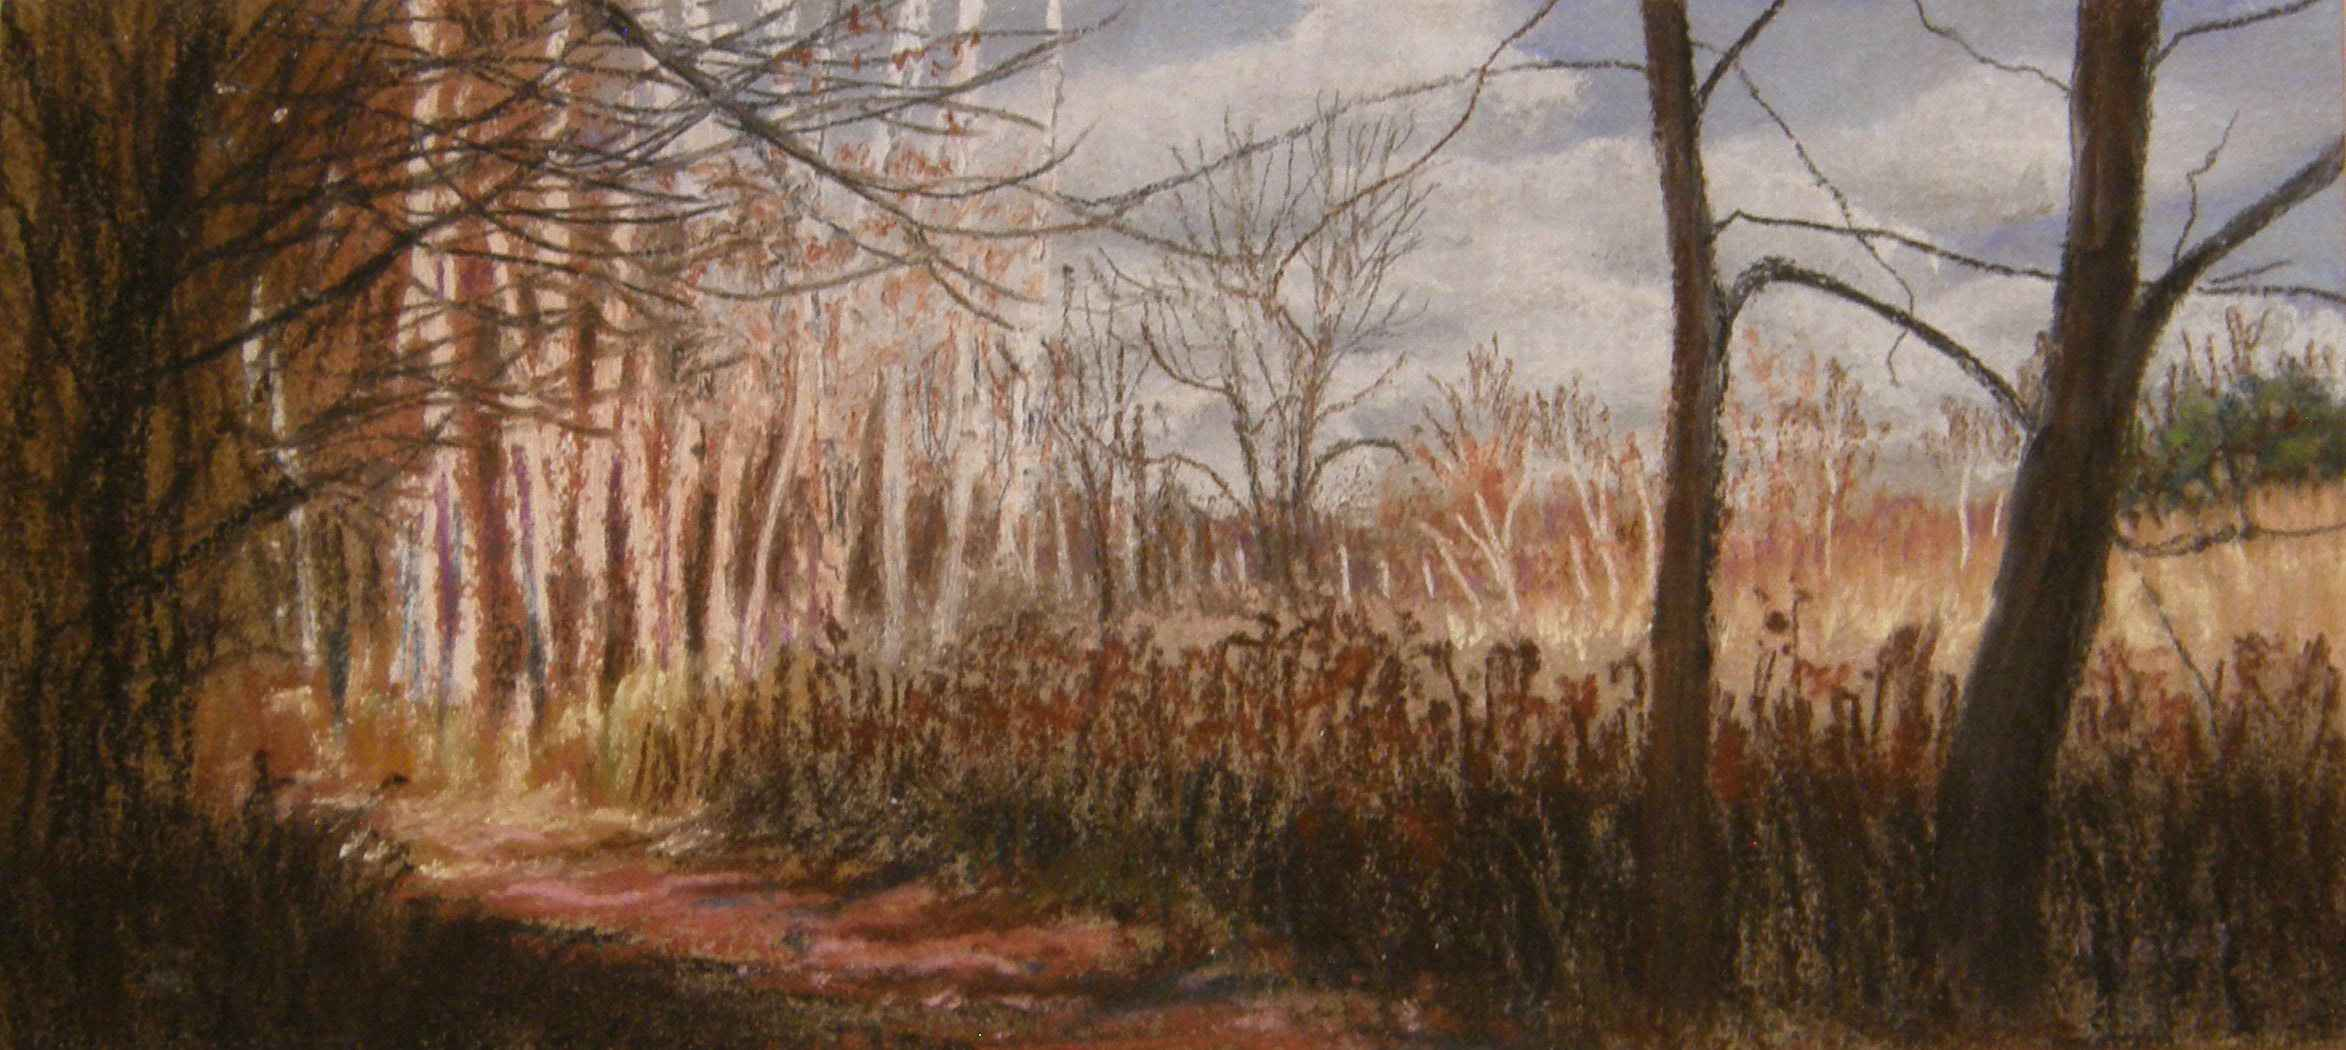 Into the Woods by  Rhoda Tews - Masterpiece Online